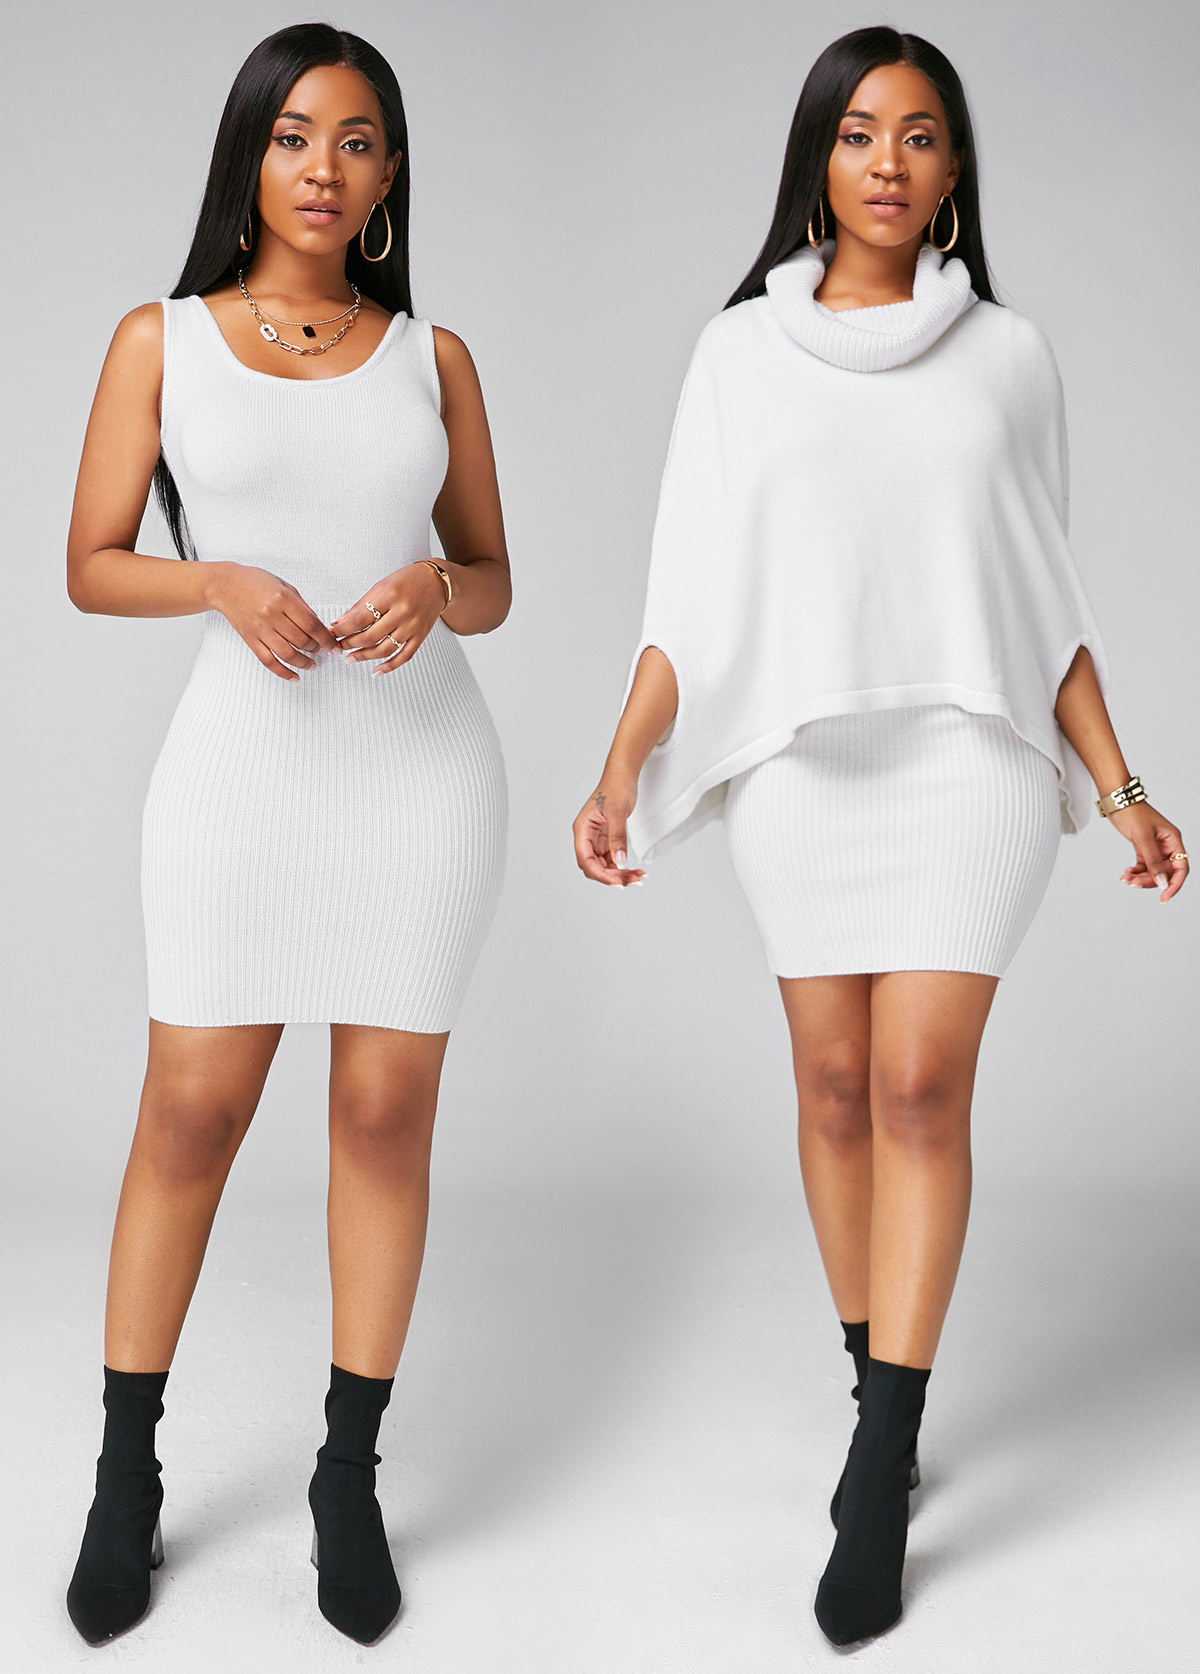 Cowl Neck Cape Shoulder Top and Sweater Dress